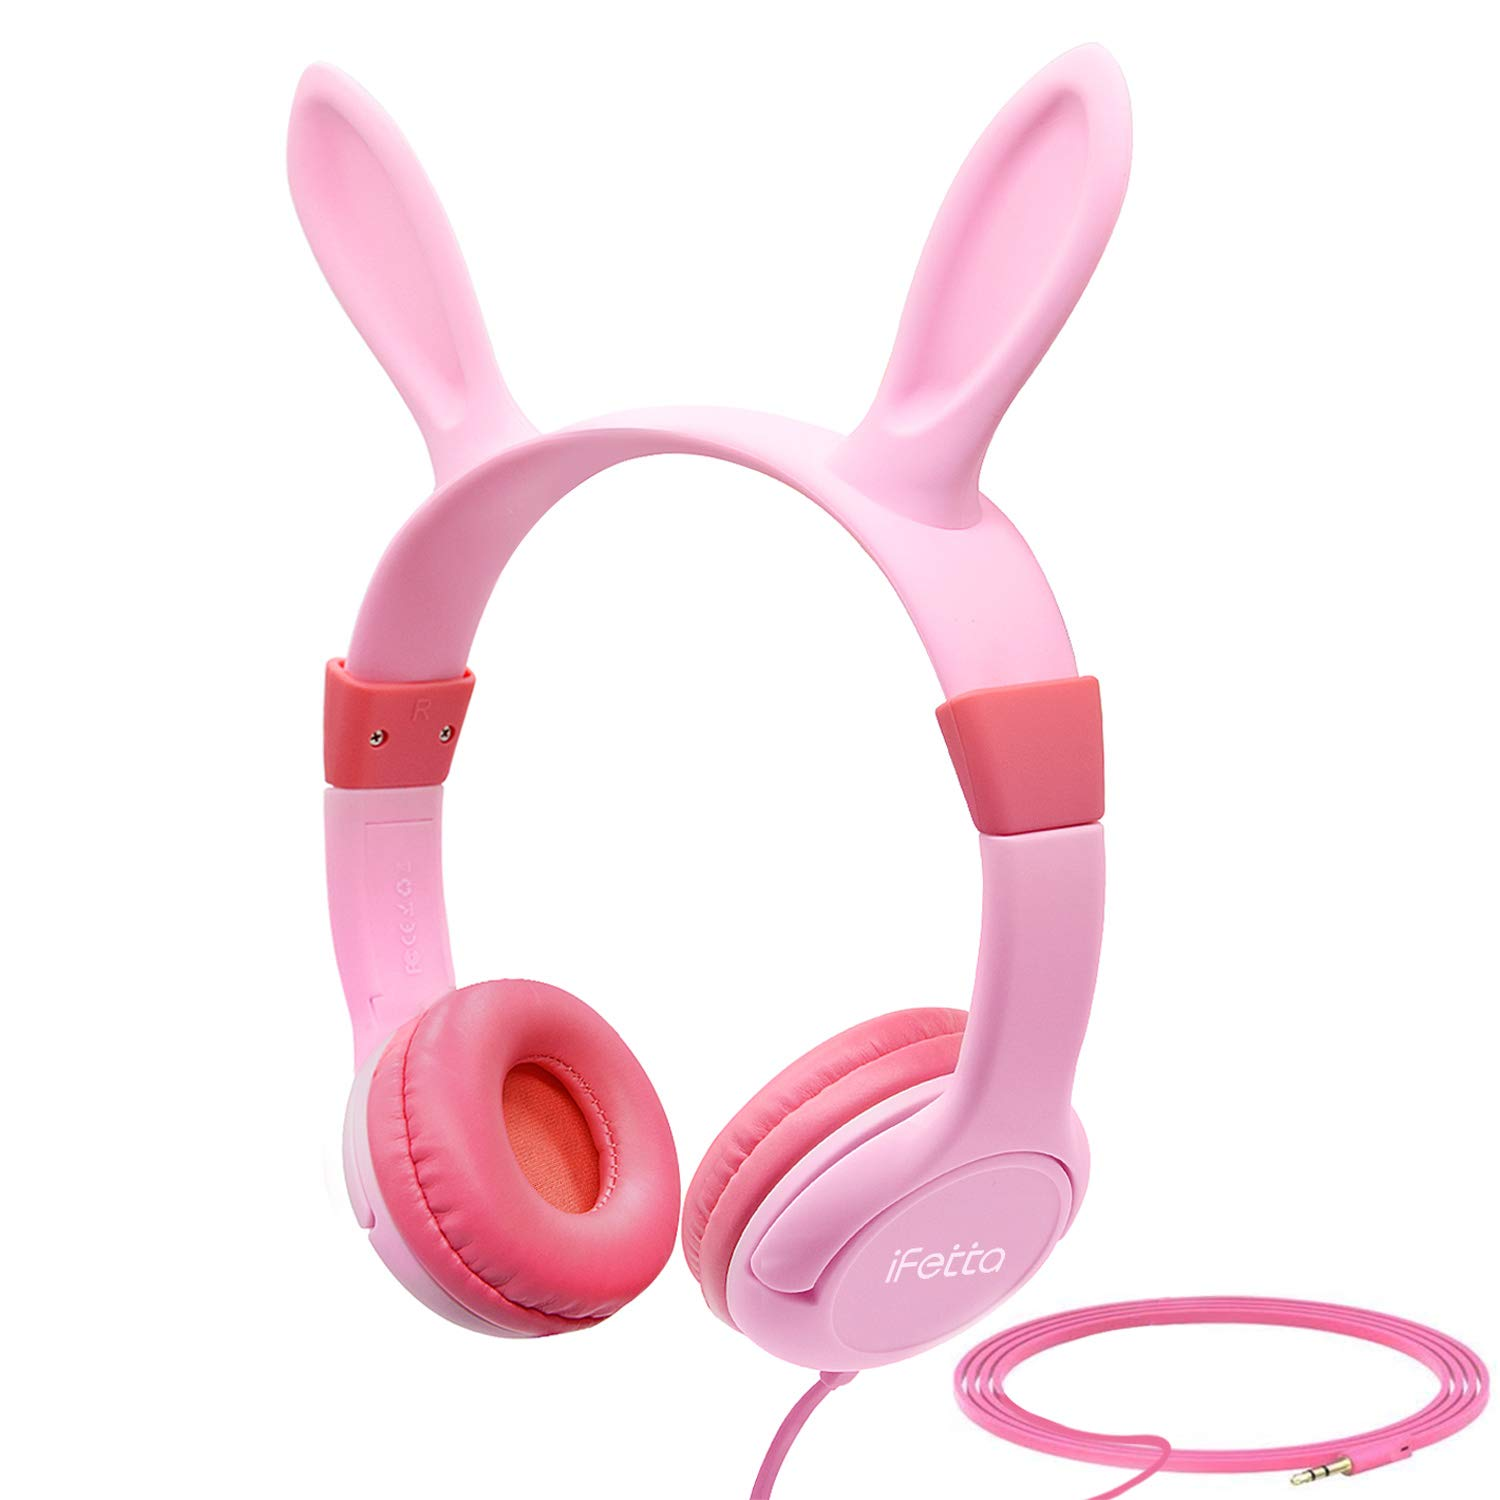 Kids Headphones, Ifecco Wired Over Ear Headphones Support Music Sharing Function Bunny Ear Headphones with 85DB Volume Limited 3.5mm Audio Jack Headset for Kids, Pink